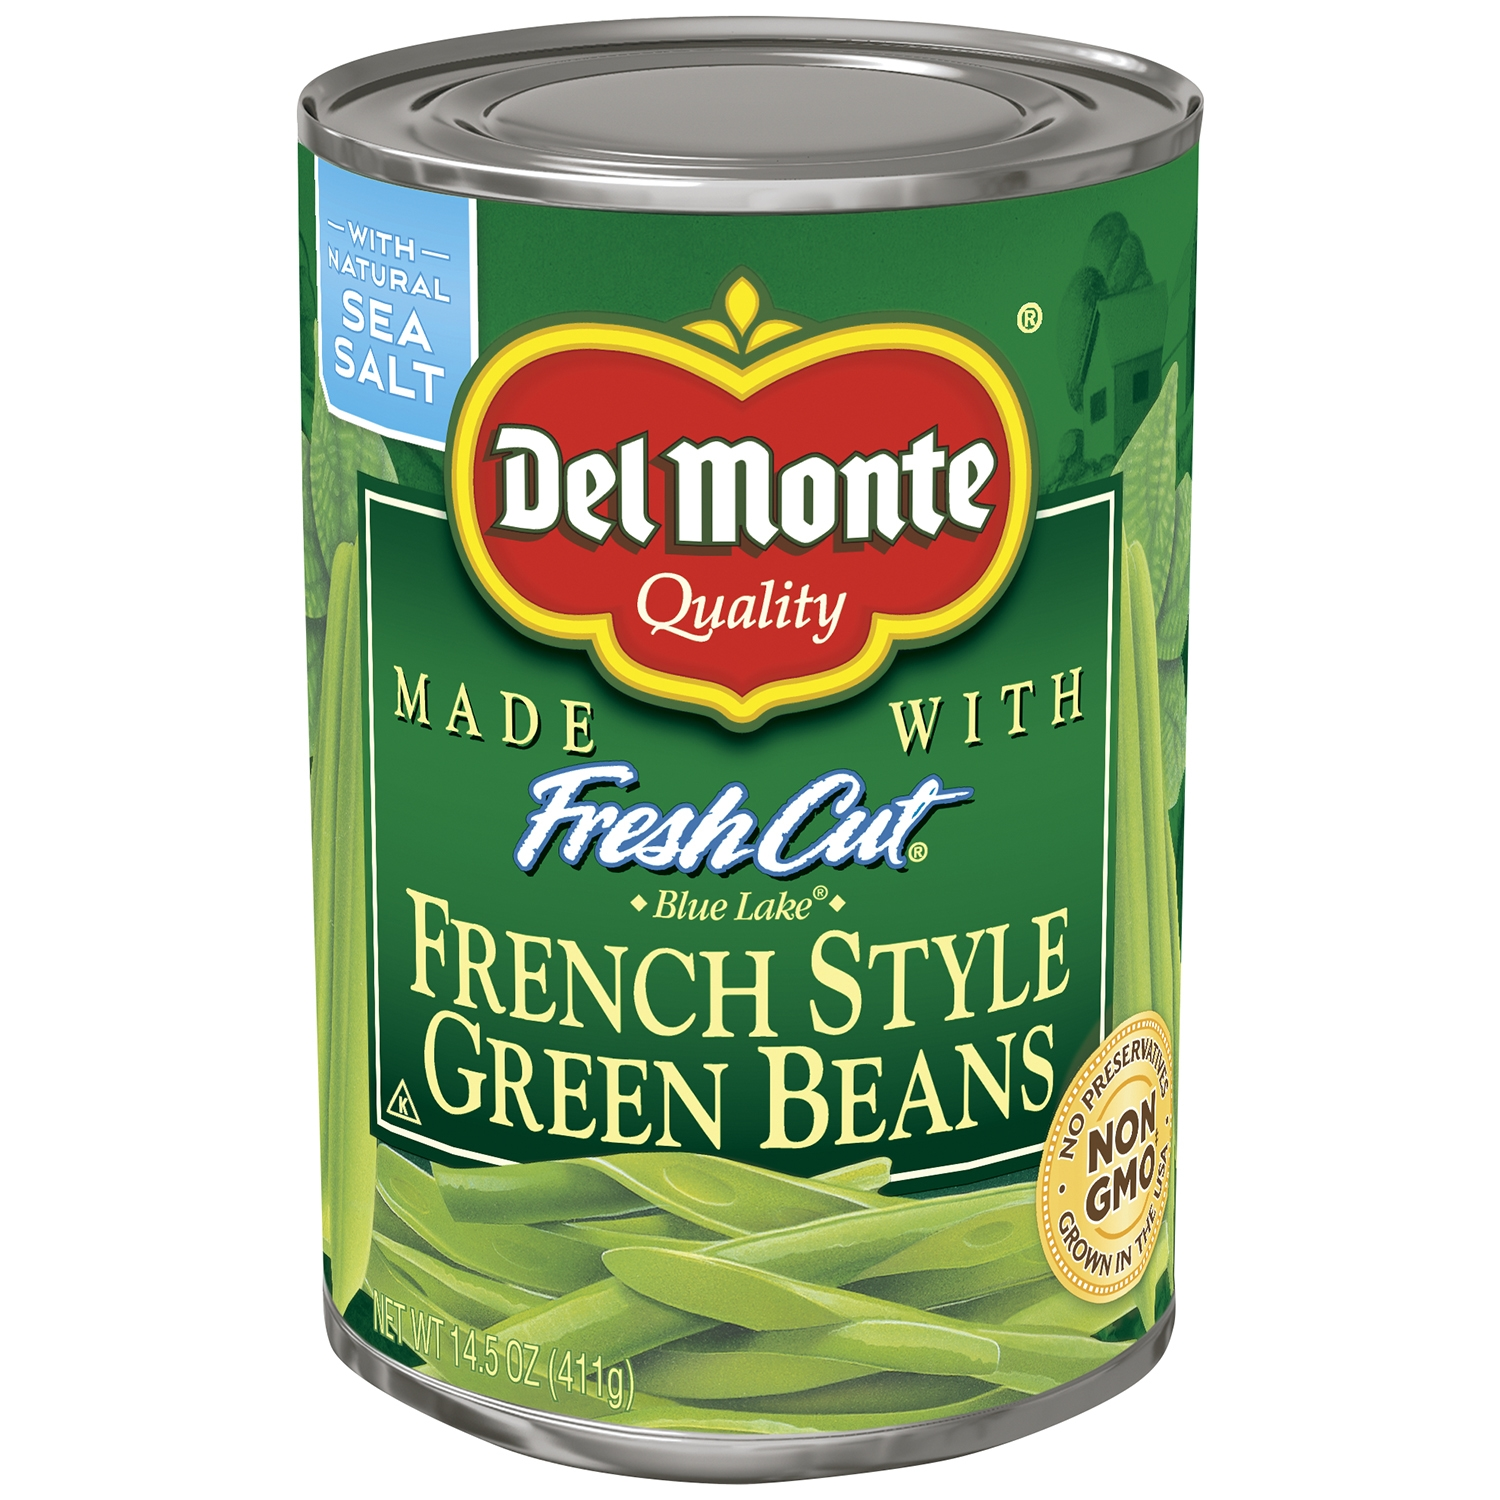 Del Monte Fresh Cut French Style Green Beans, 14.5 OZ